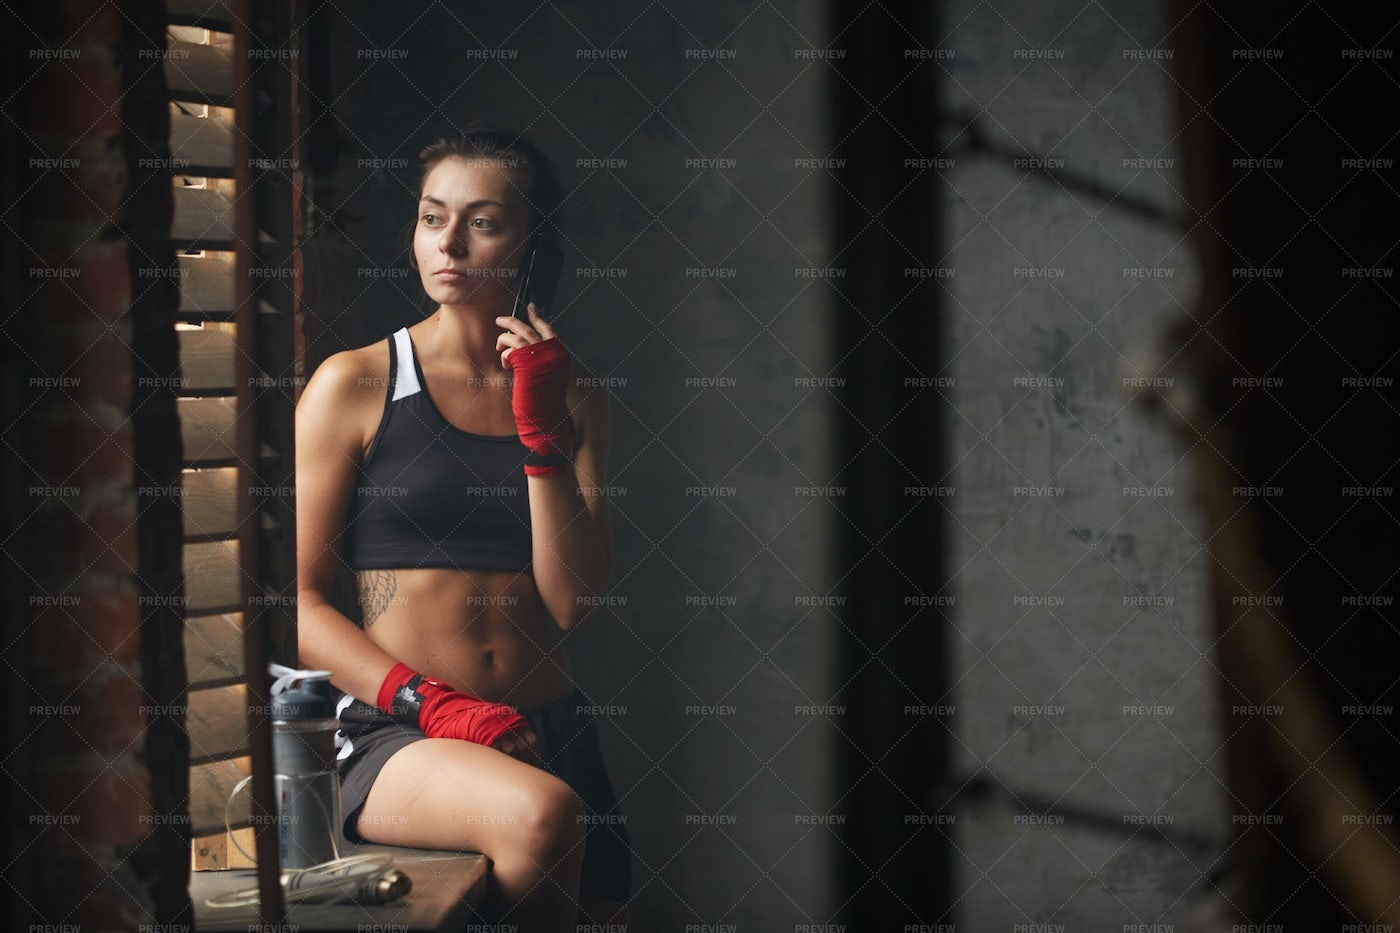 Tough Young Woman By Window: Stock Photos